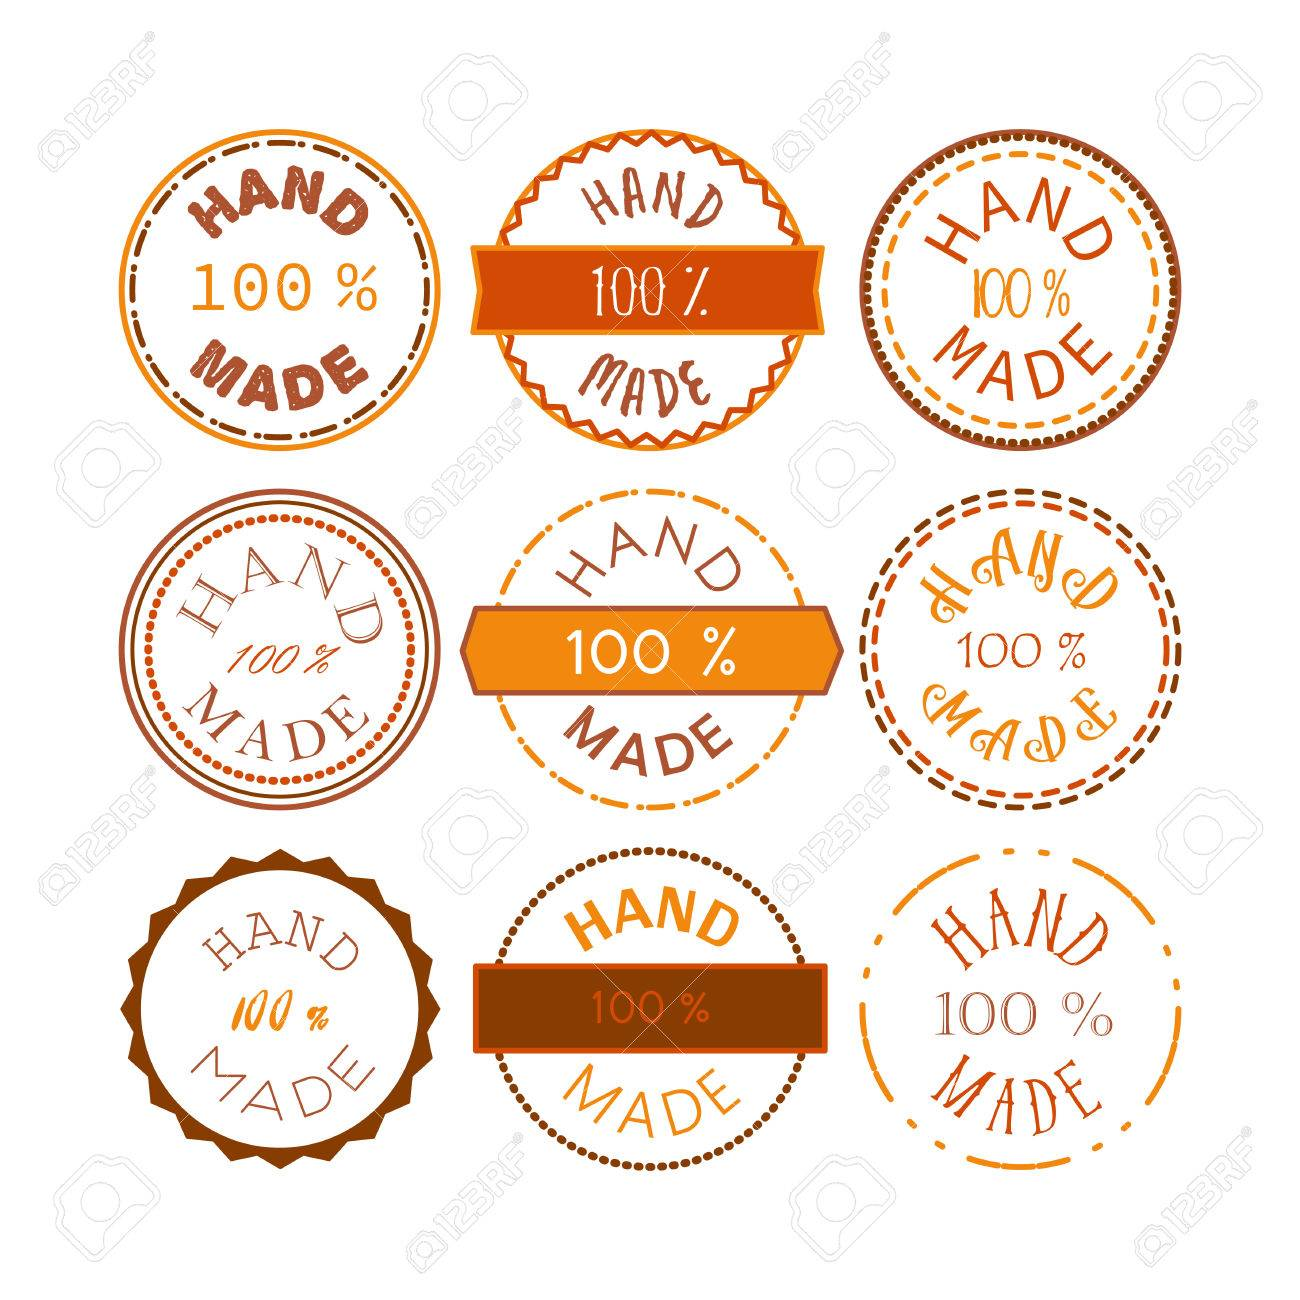 Badge template with 100 handmade product symbol vintage sticker badge template with 100 handmade product symbol vintage sticker with text 100 hand made buycottarizona Image collections